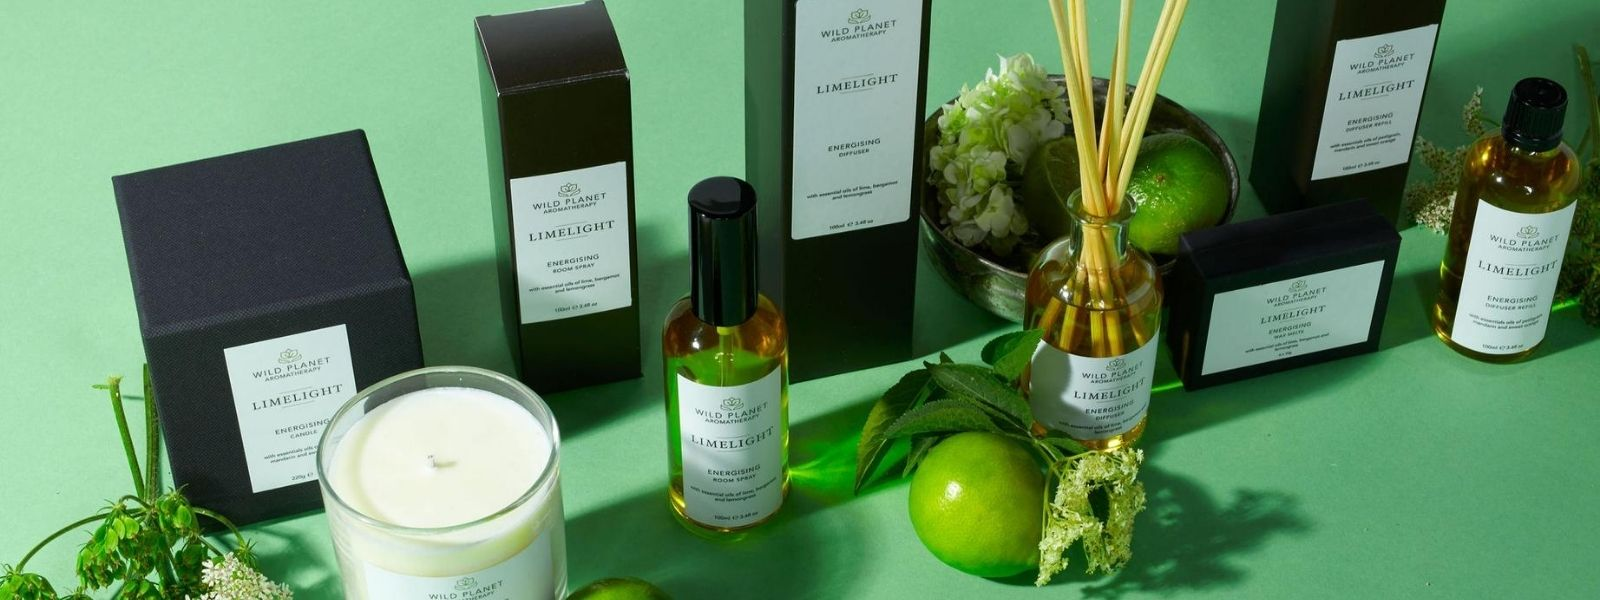 Limelight candle, room spray, reed diffuser and wax melts by Wild Planet Aromatherapy next to fresh limes